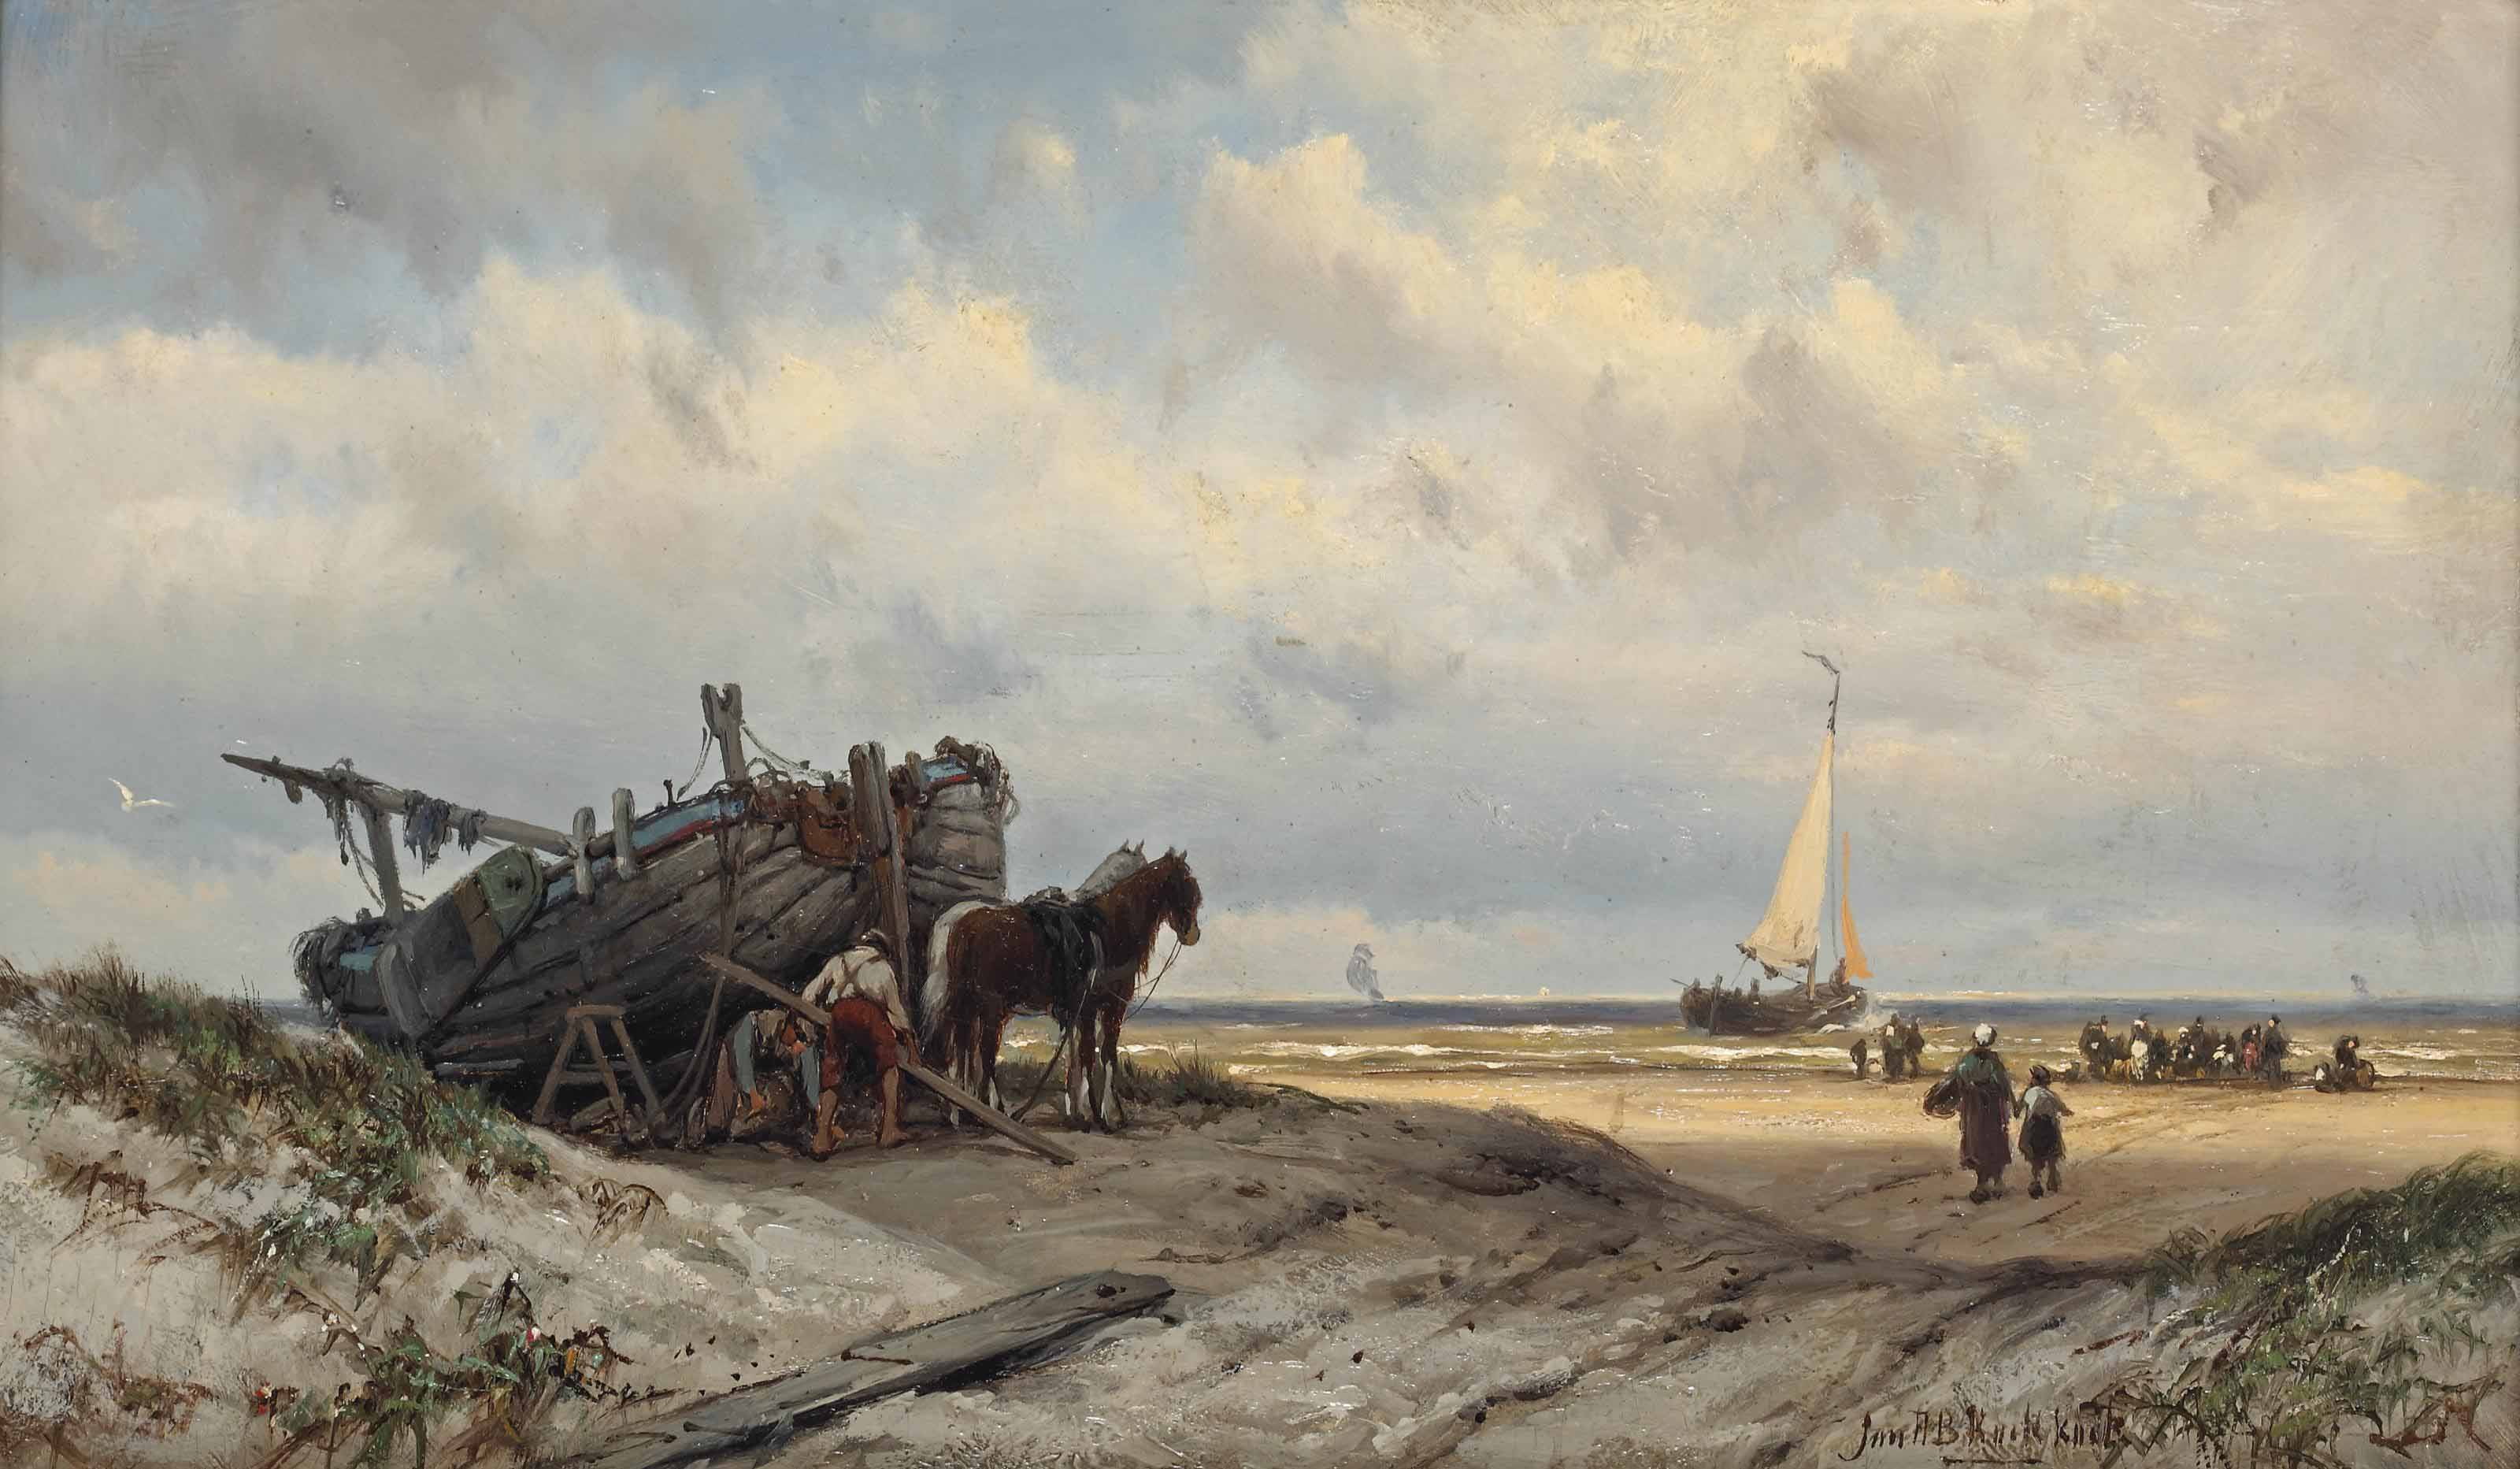 Repairing the vessel in the dunes